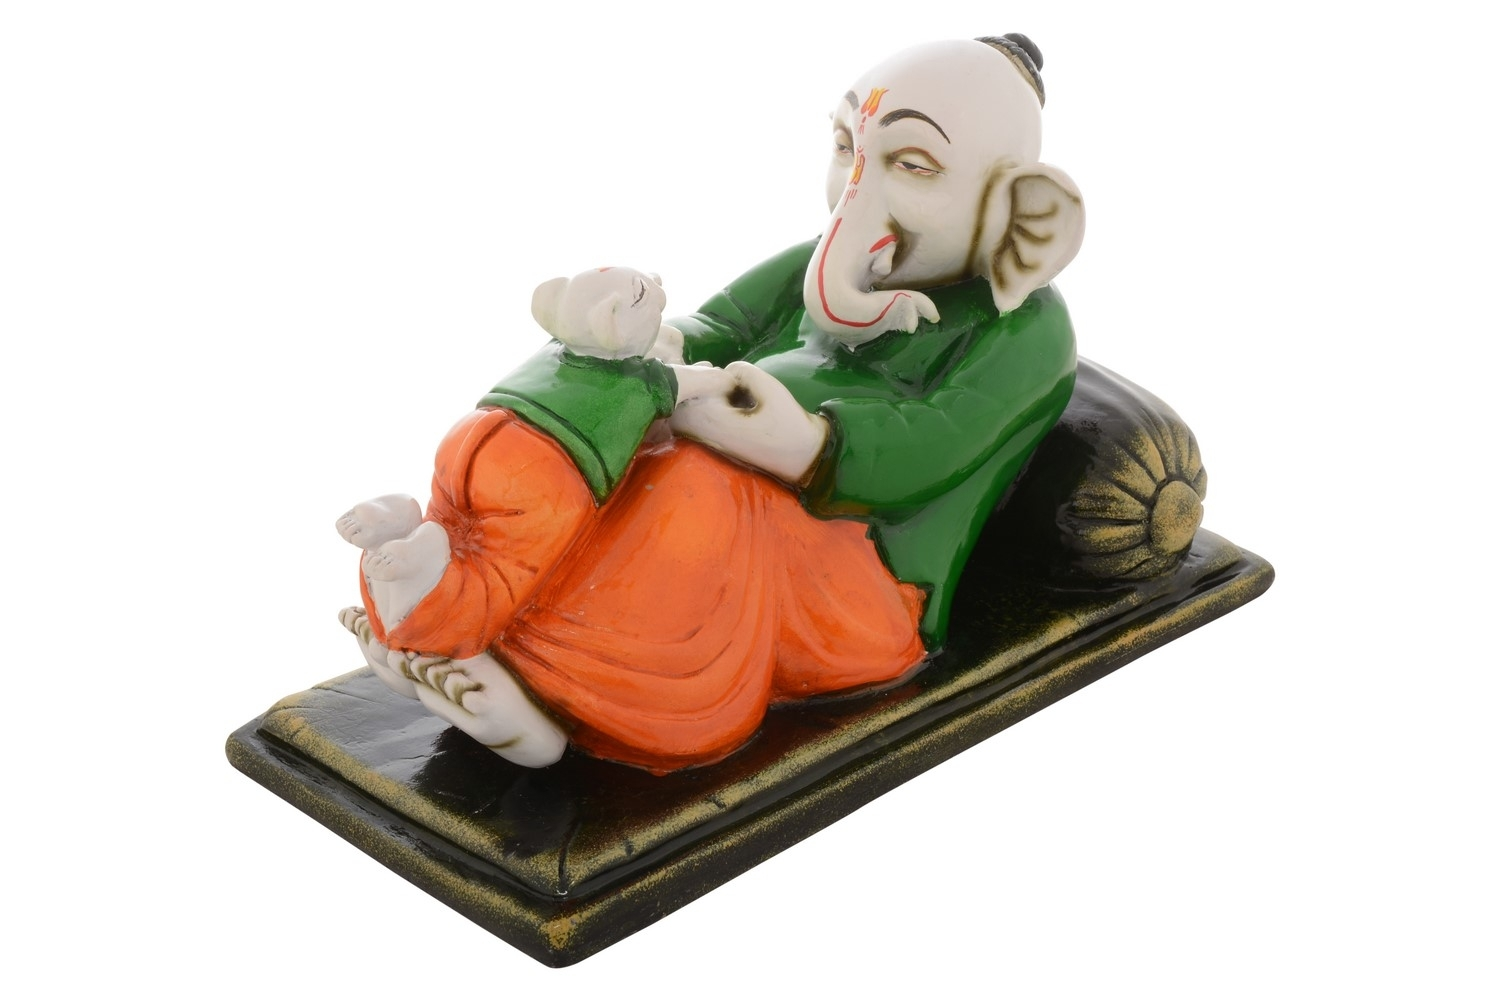 Premium Figurine of Lord Ganesha playing with Mouse Indian Home Decor